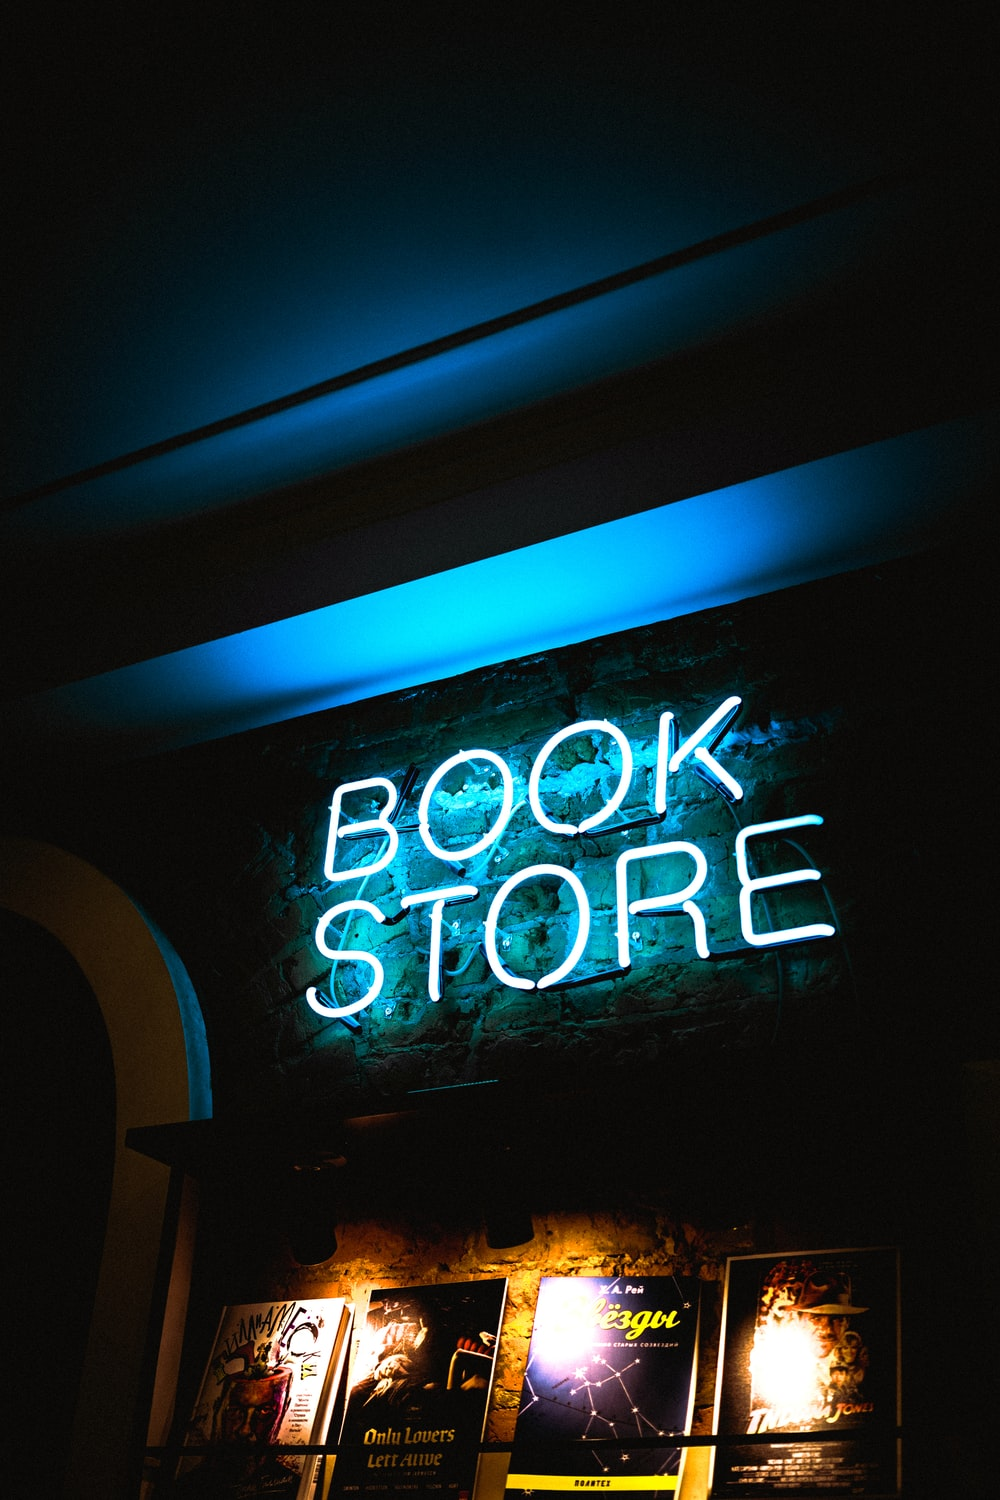 blue Book Store neon signage